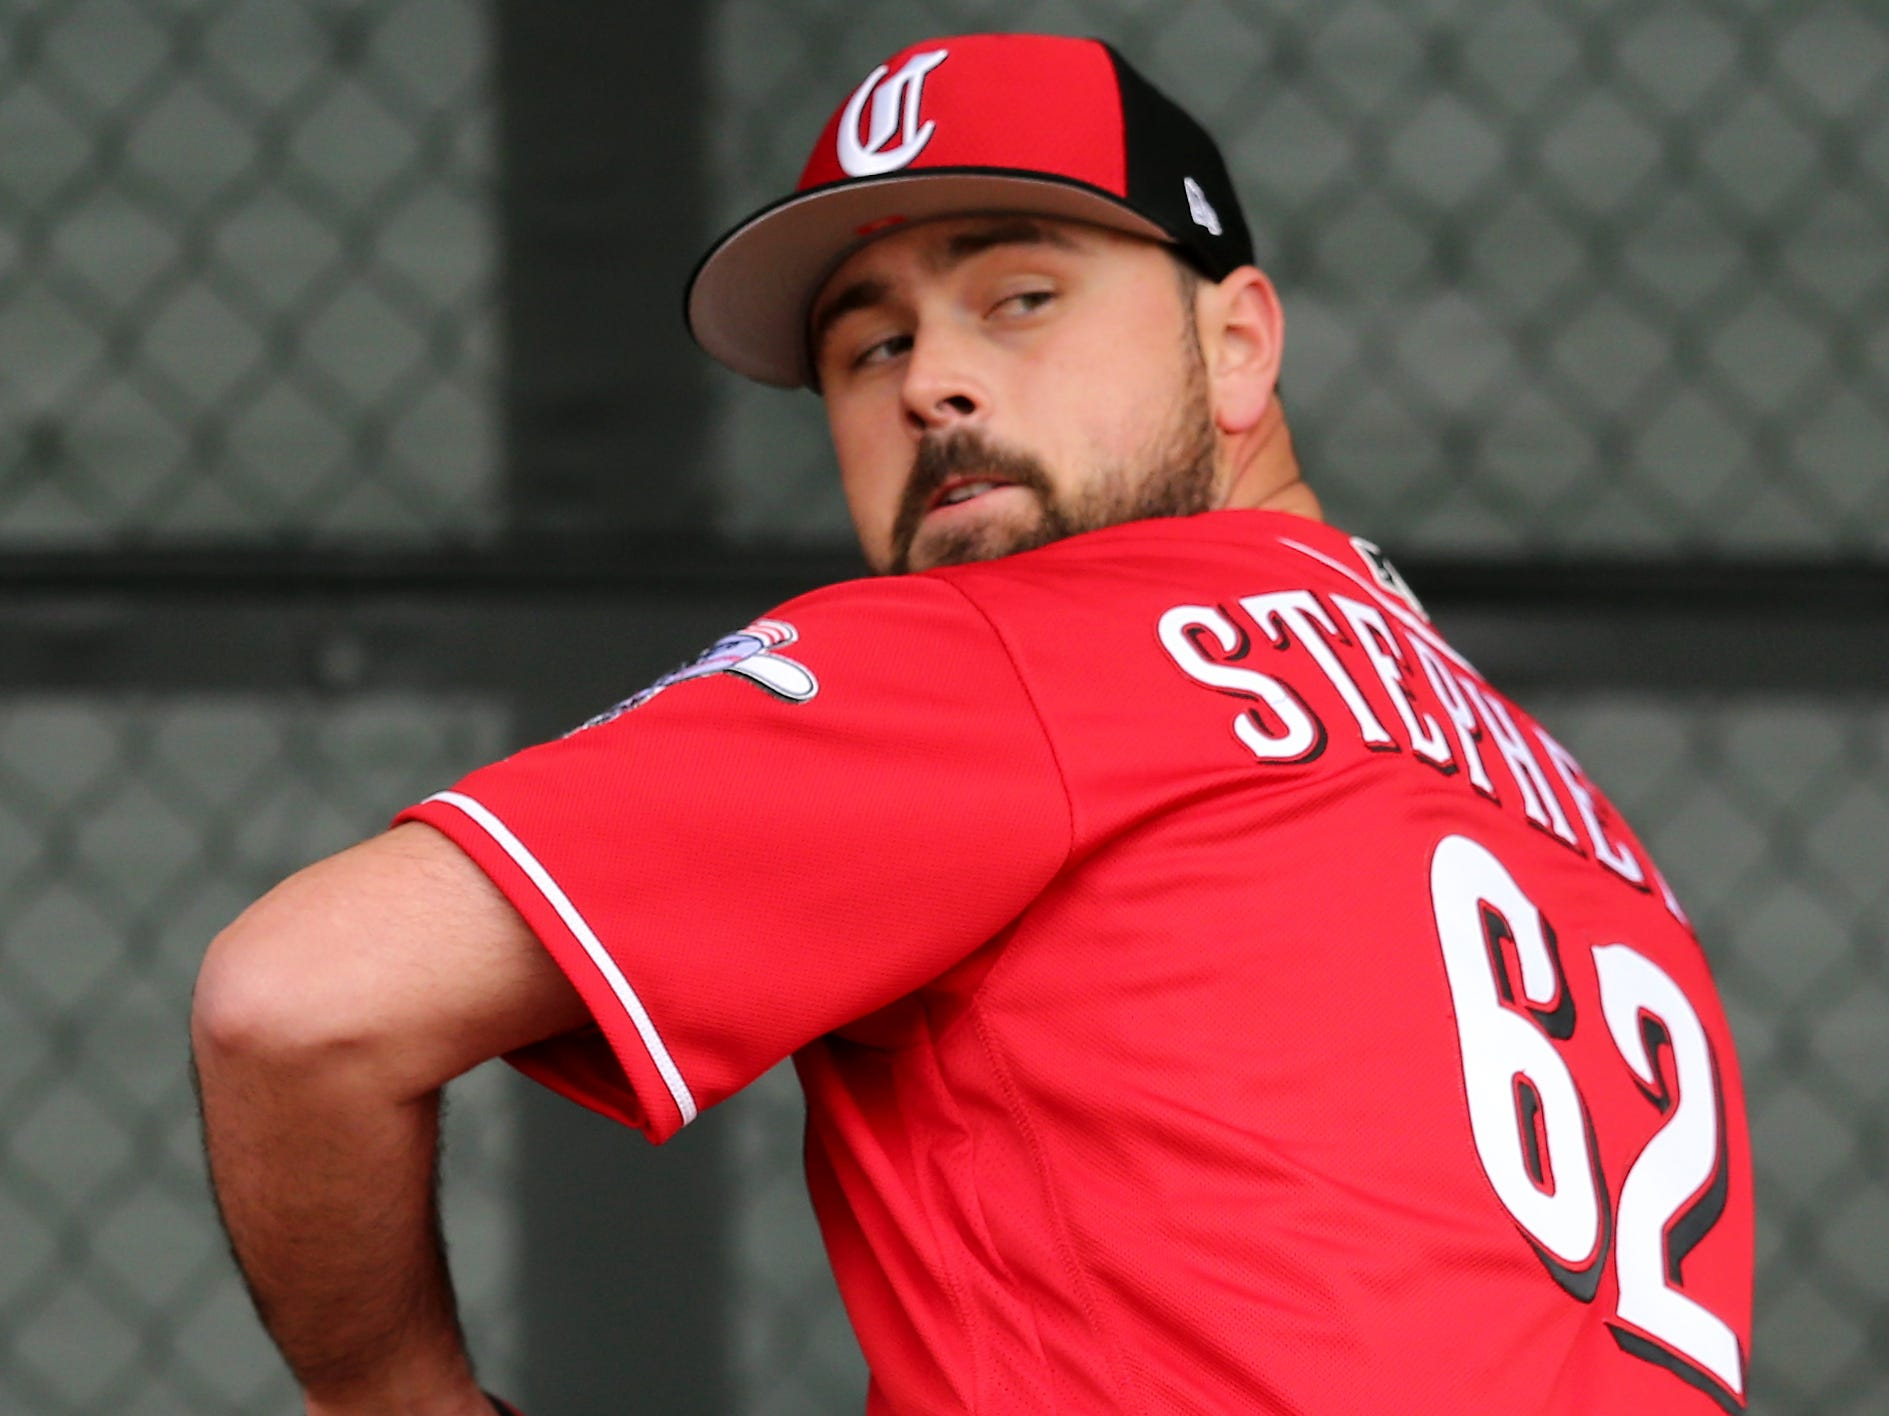 Cincinnati Reds relief pitcher Jackson Stephens (62) delivers during a bullpen session, Thursday, Feb. 14, 2019, at the Cincinnati Reds spring training facility in Goodyear, Arizona.